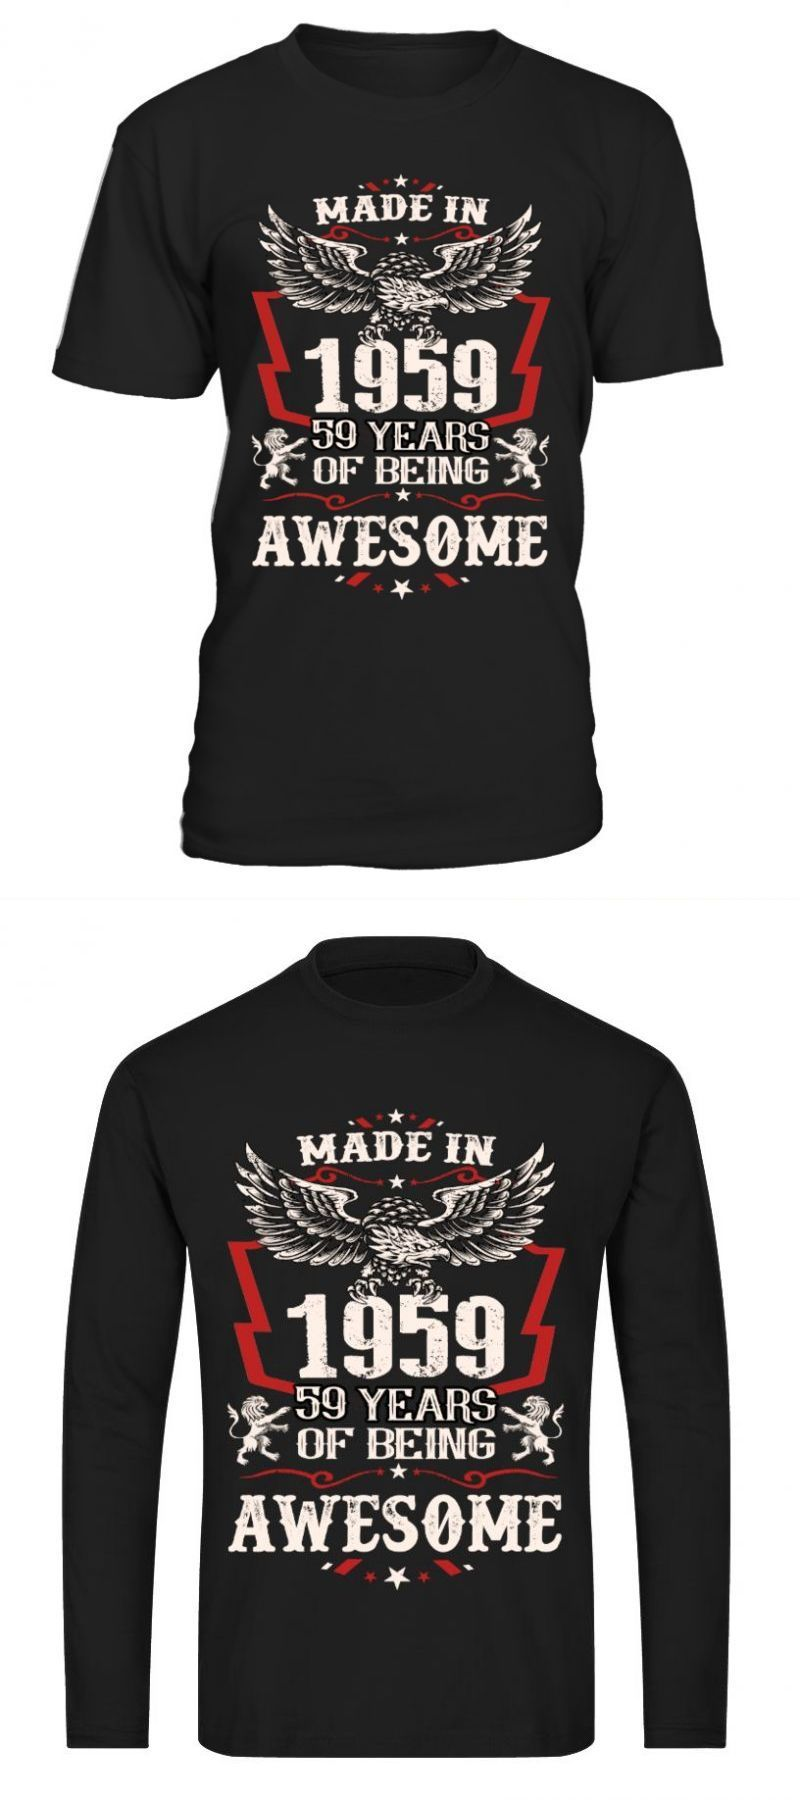 New year t shirt funny 195959 years of being awesome